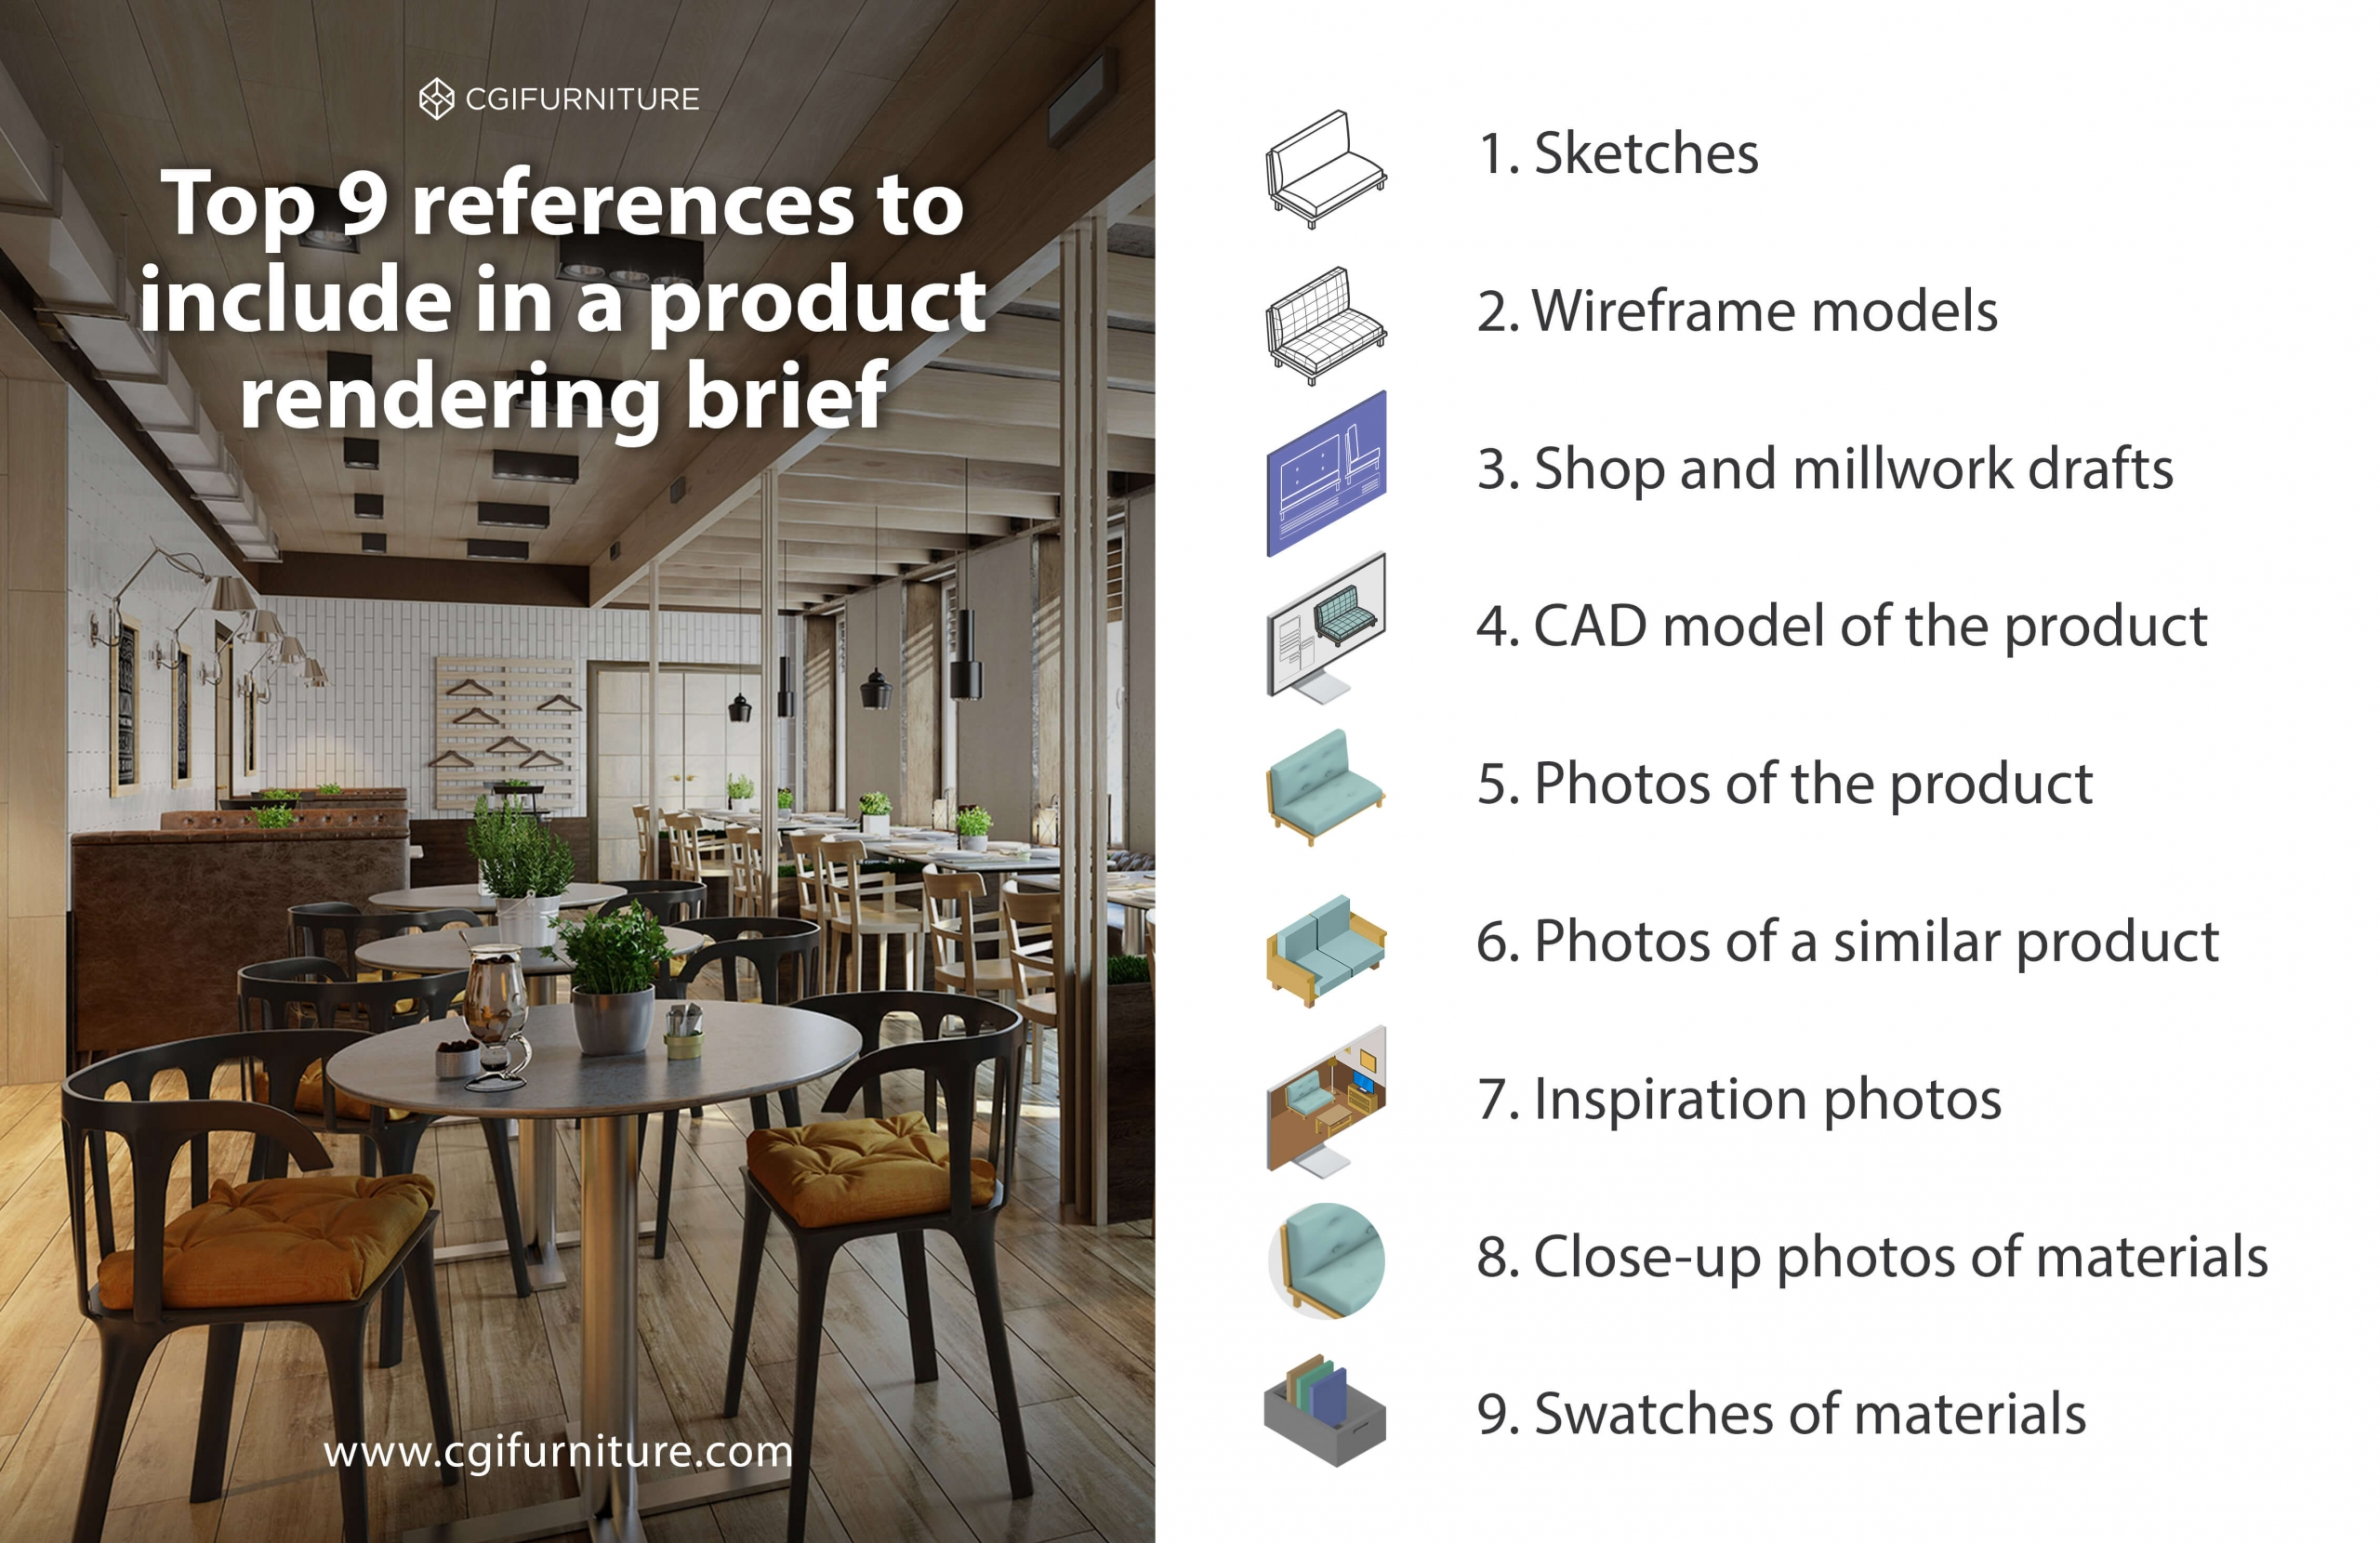 Types of Reference Materials for a Product Rendering Brief